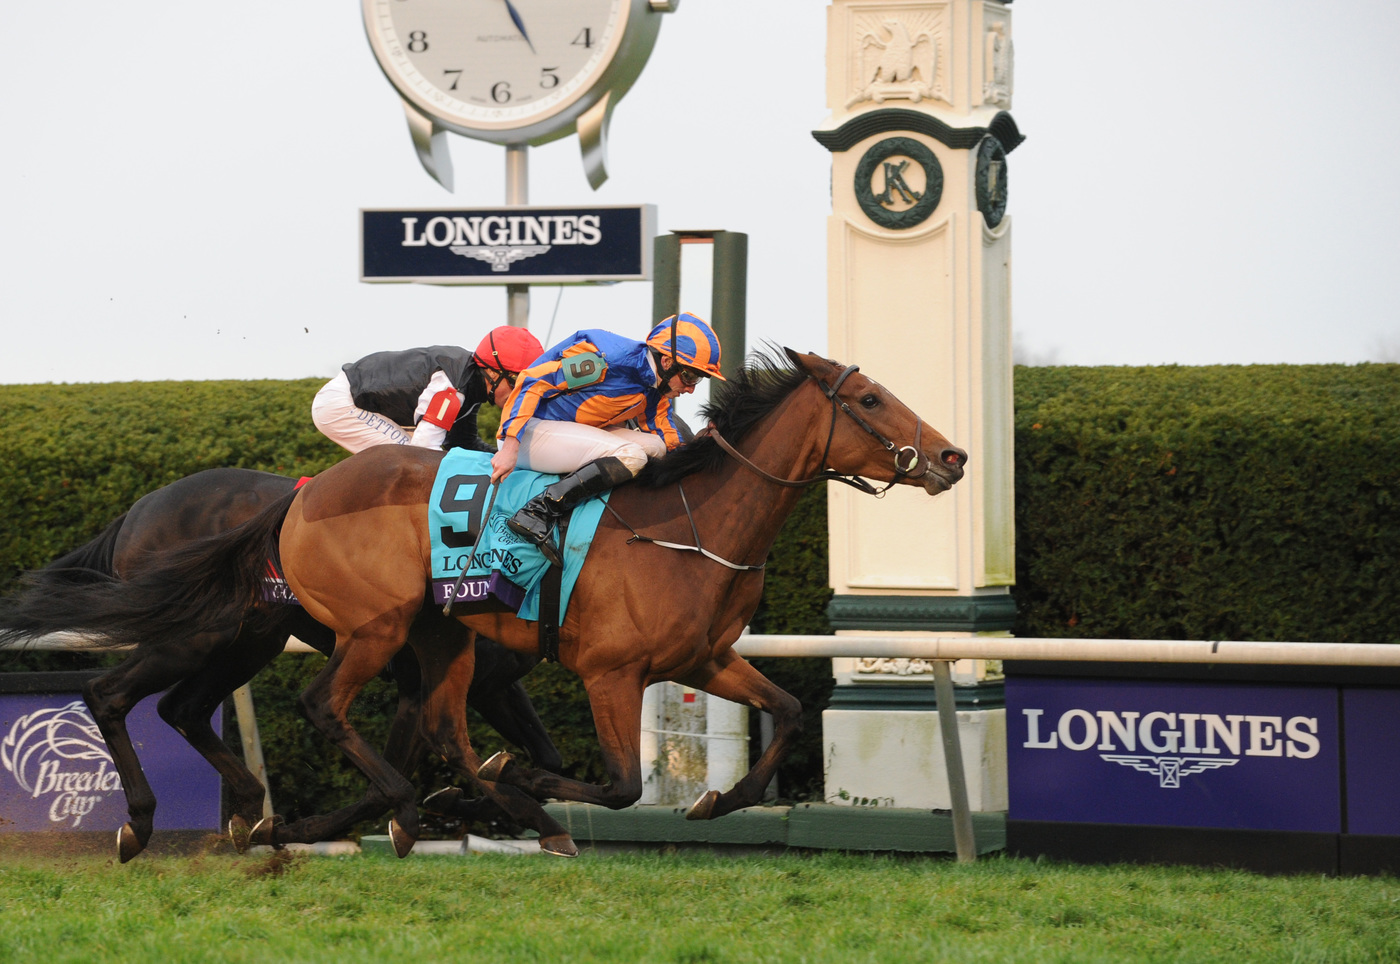 Longines Flat Racing Event: Longines times American Pharoah's historic victory in Breeders' Cup Classic 3